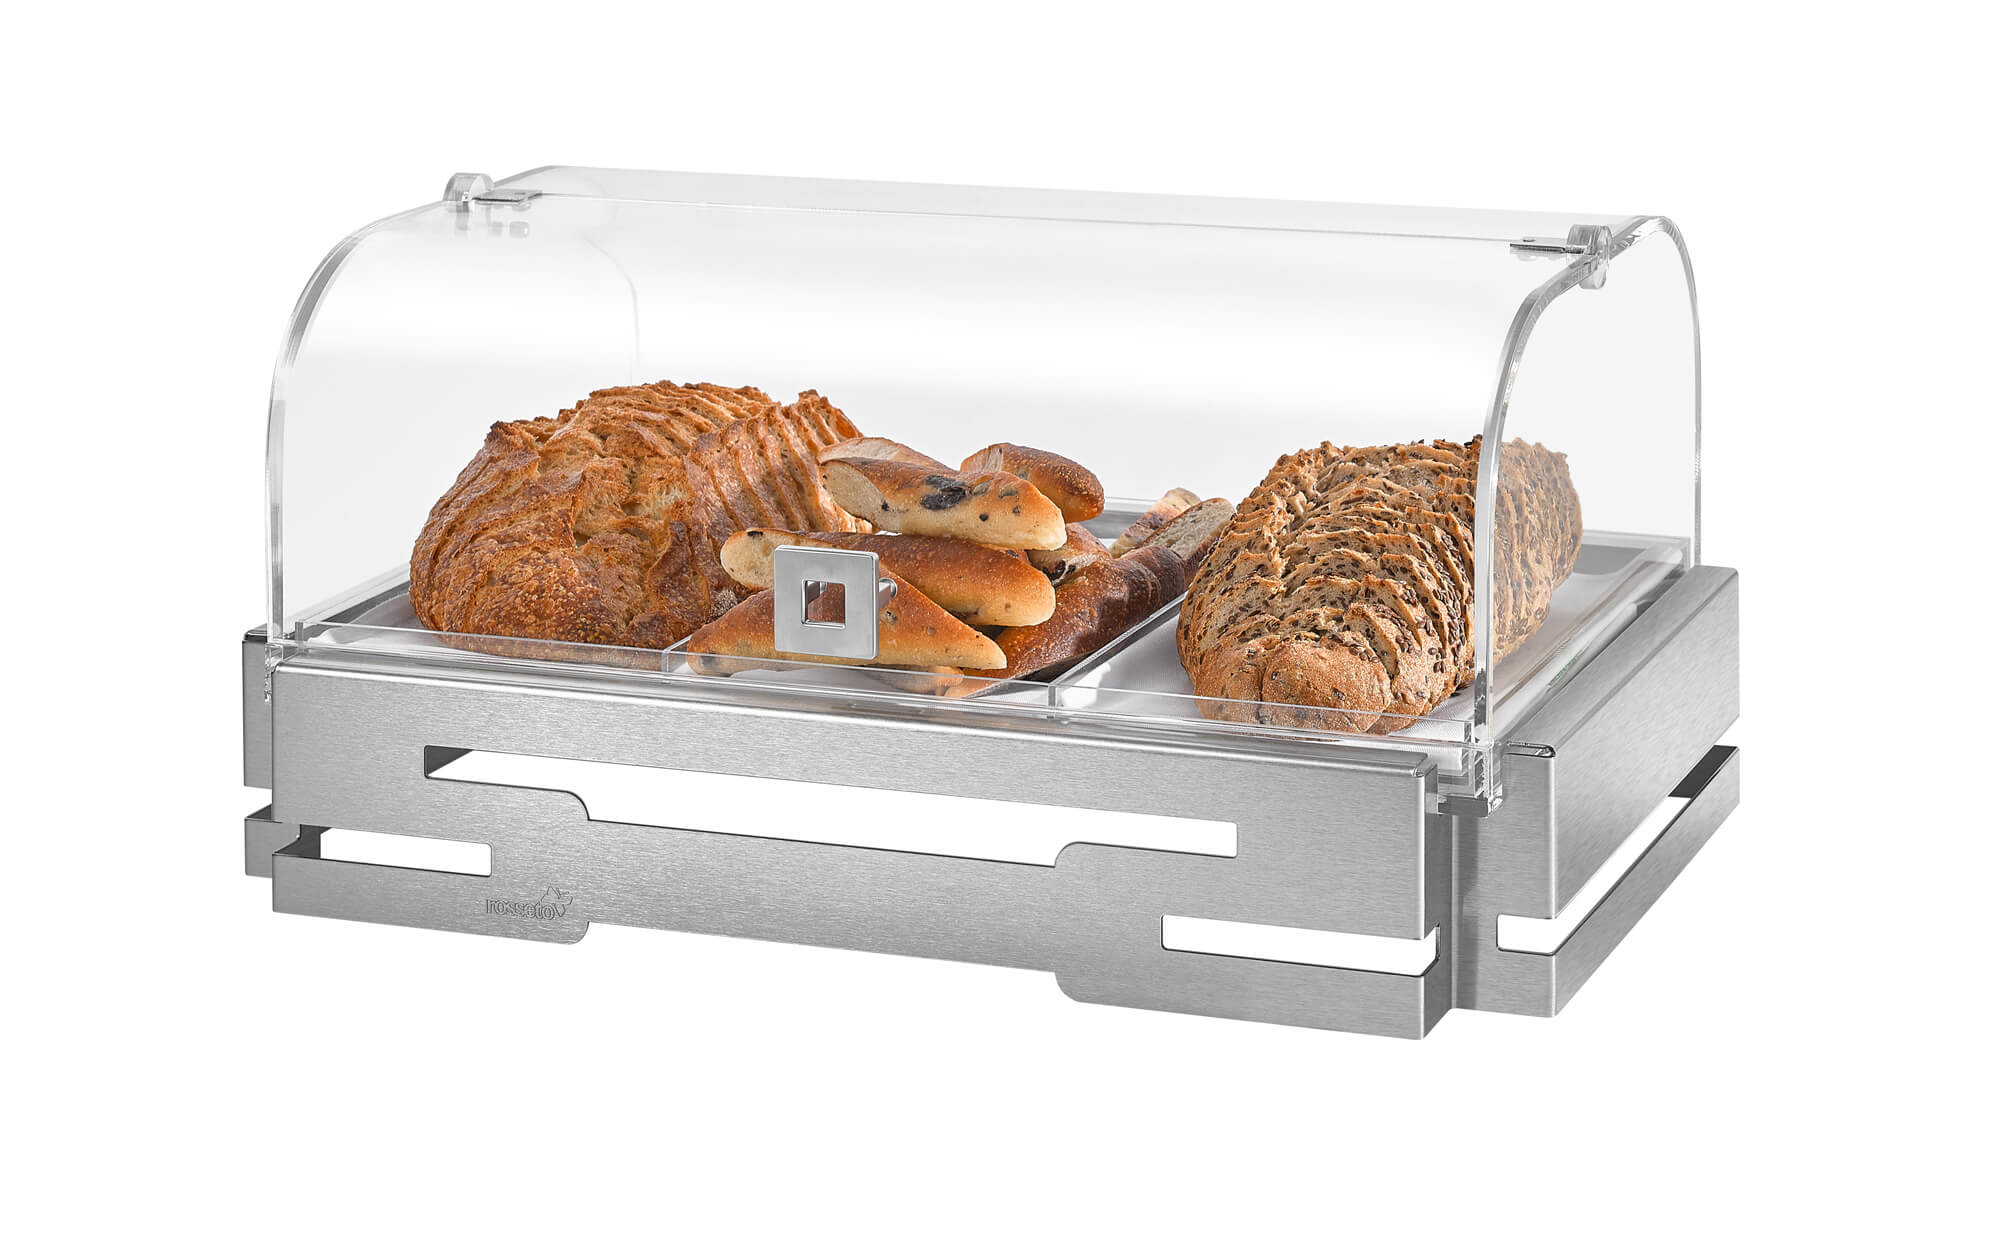 Countertop Bakery Case Stainless Steel Base For Rosseto Bakery Cases Bk015